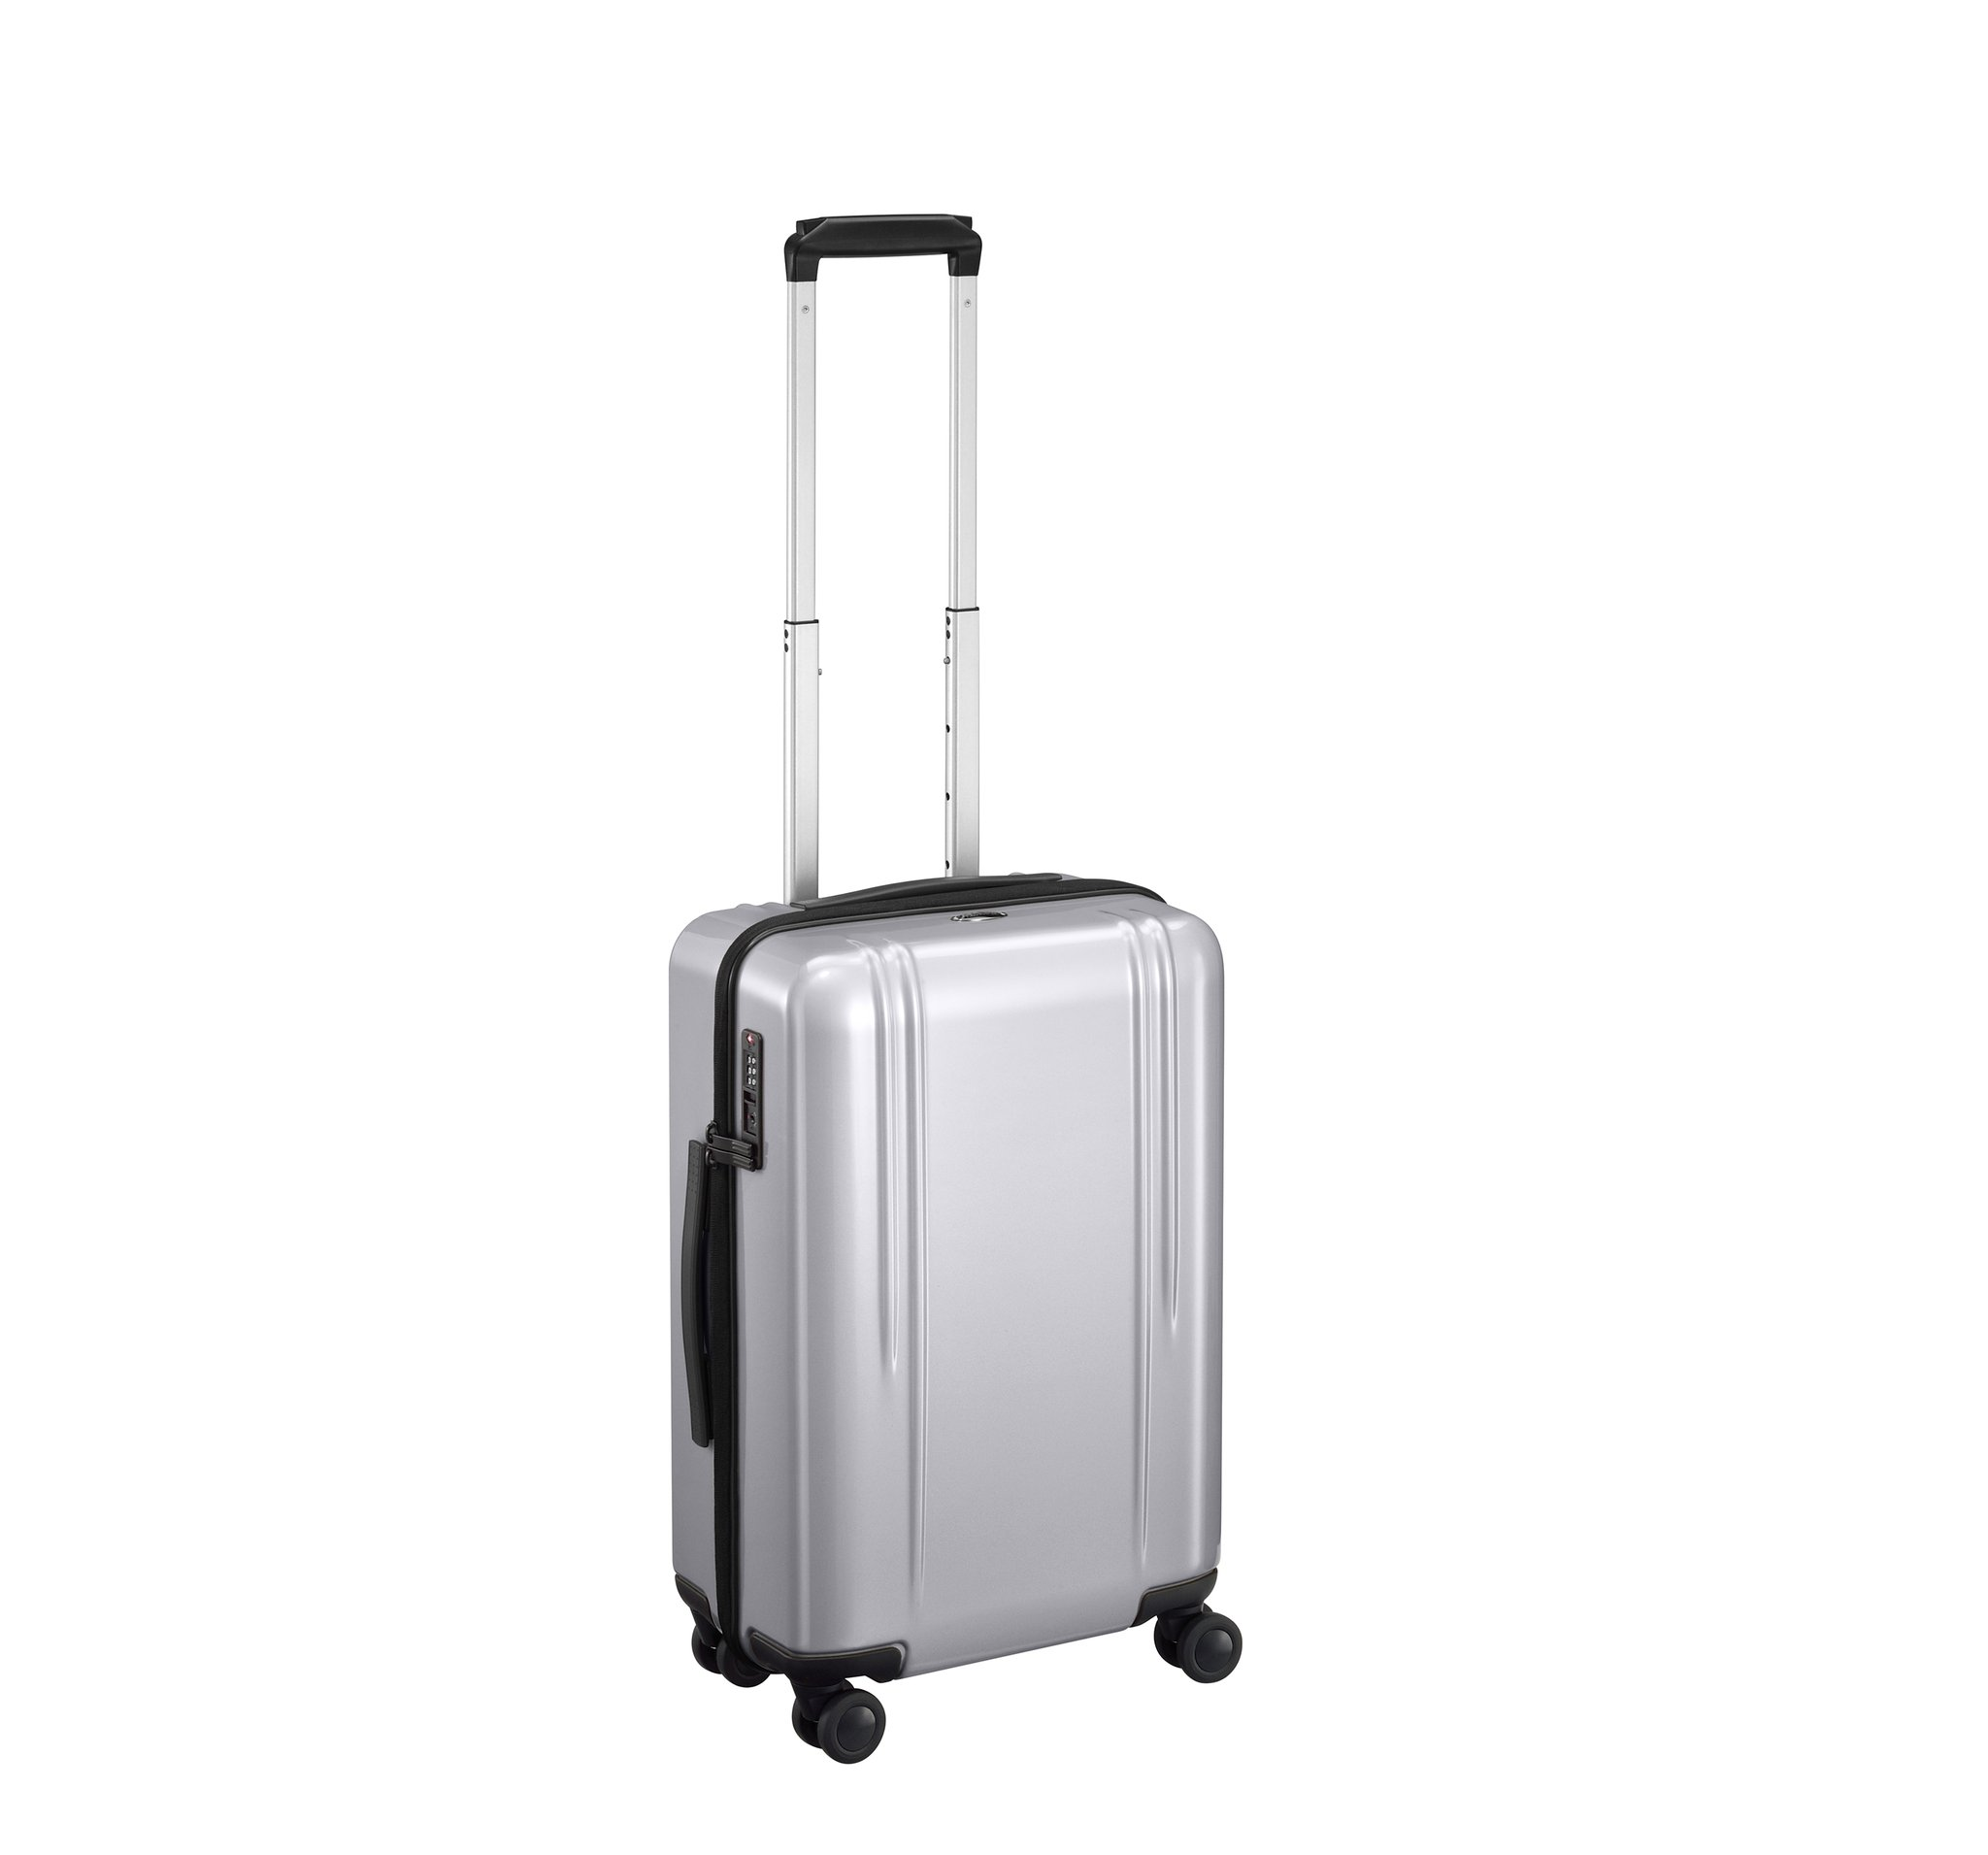 "ZRL - 22"" Domestic Lightweight Luggage by Zero Halliburton (Color: Silver)"